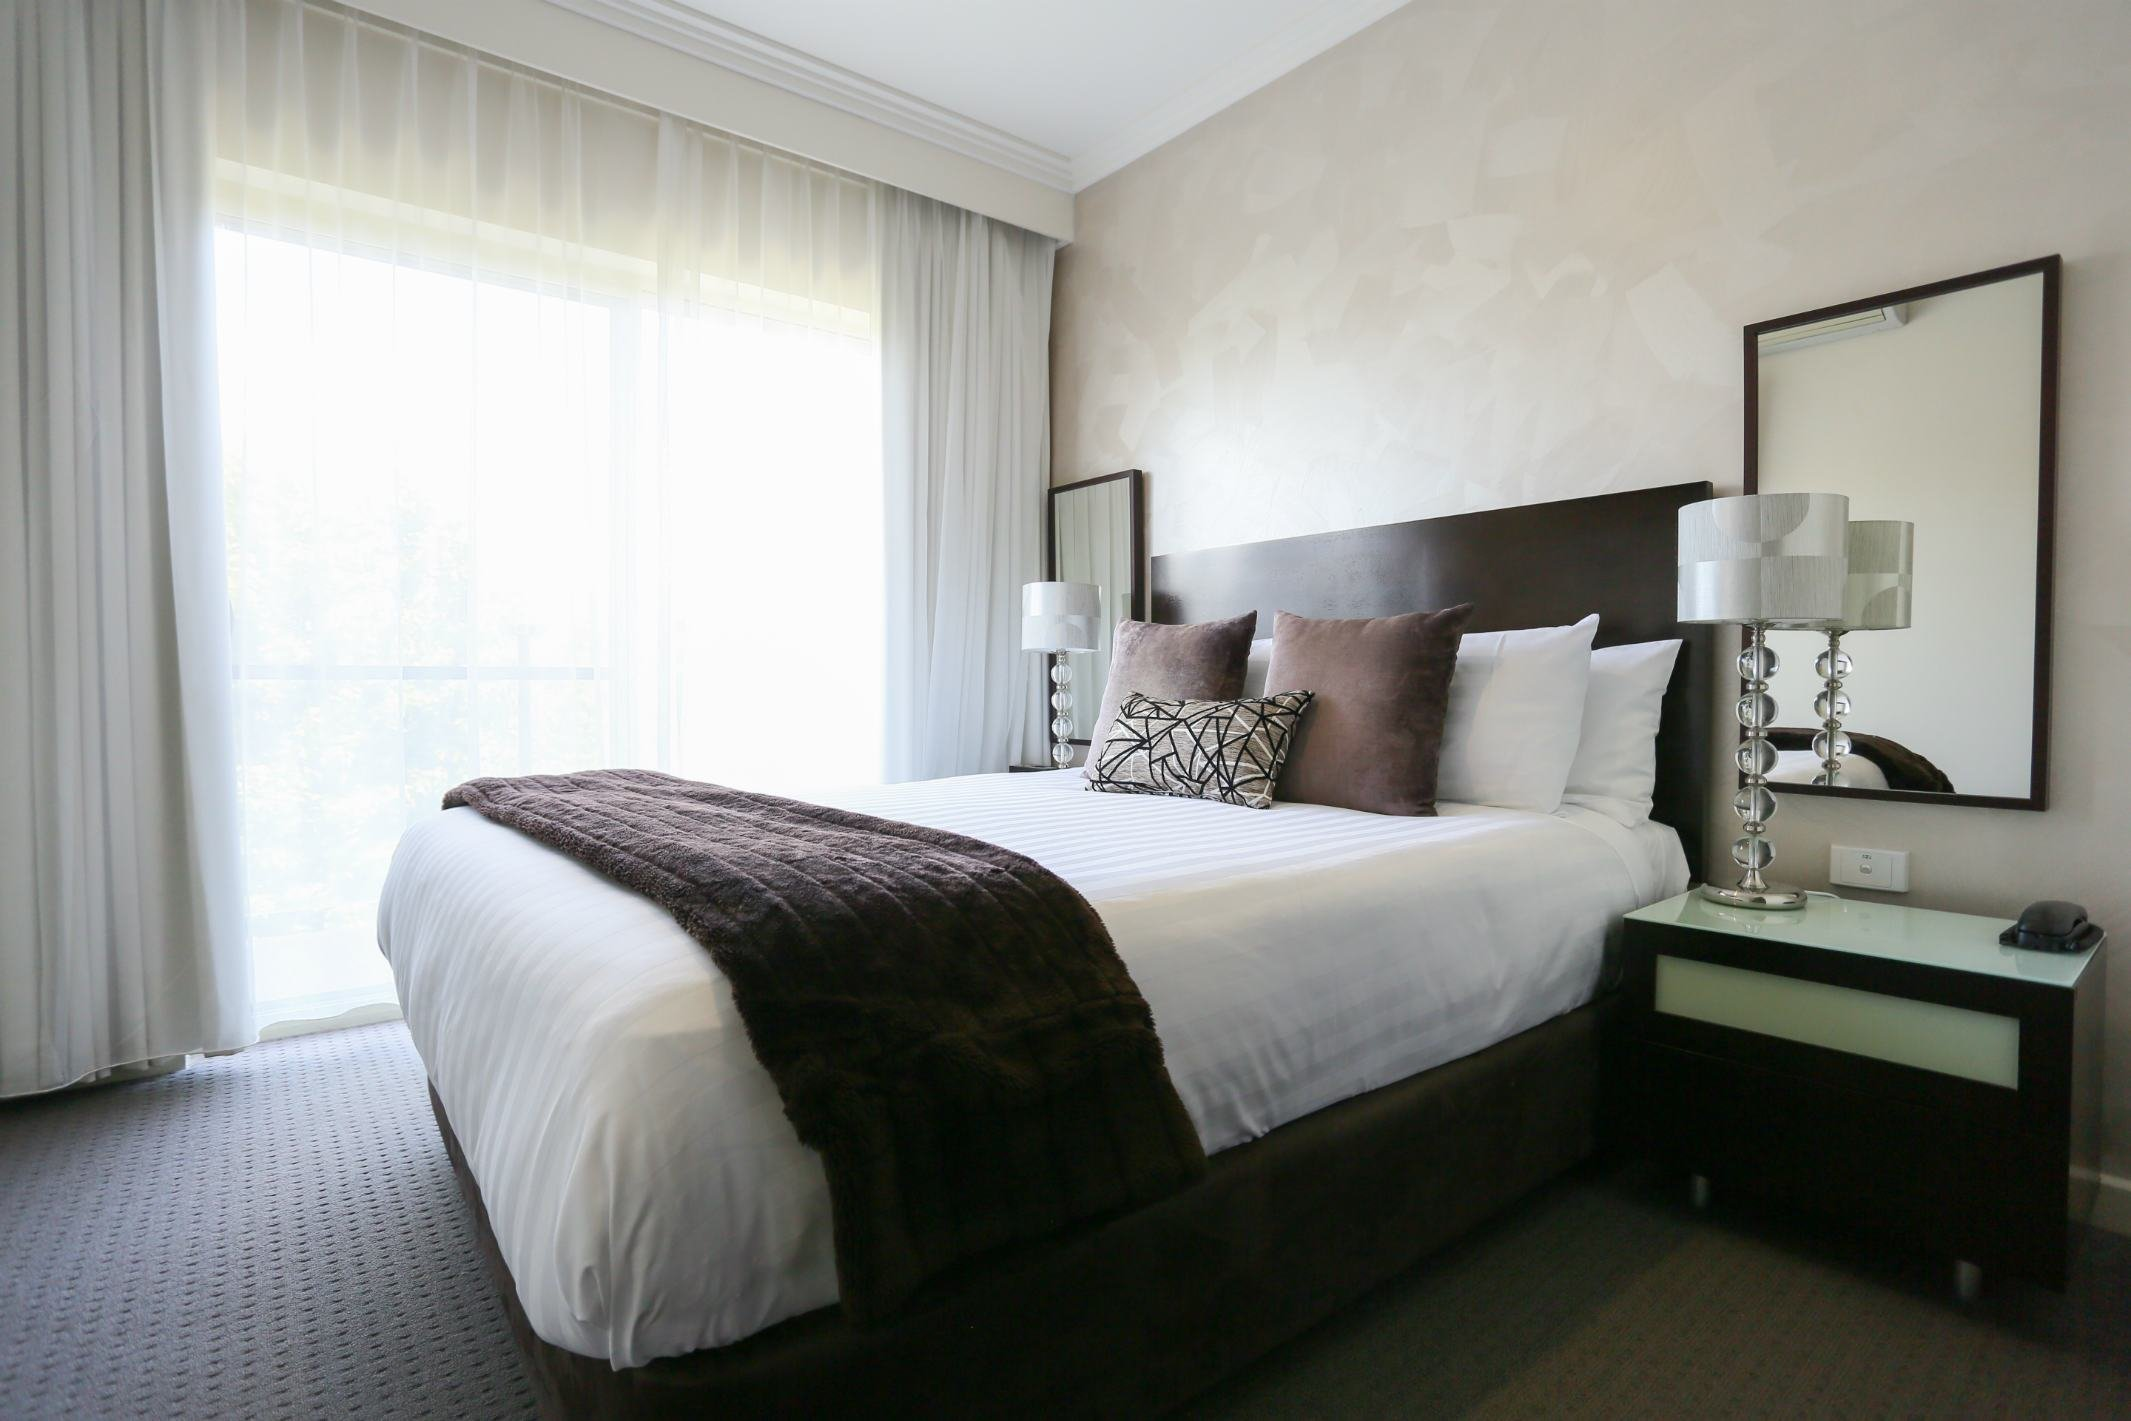 Best 2 Bedroom Apartment Hovell Tree Inn Premier Hotel Albury With Pictures